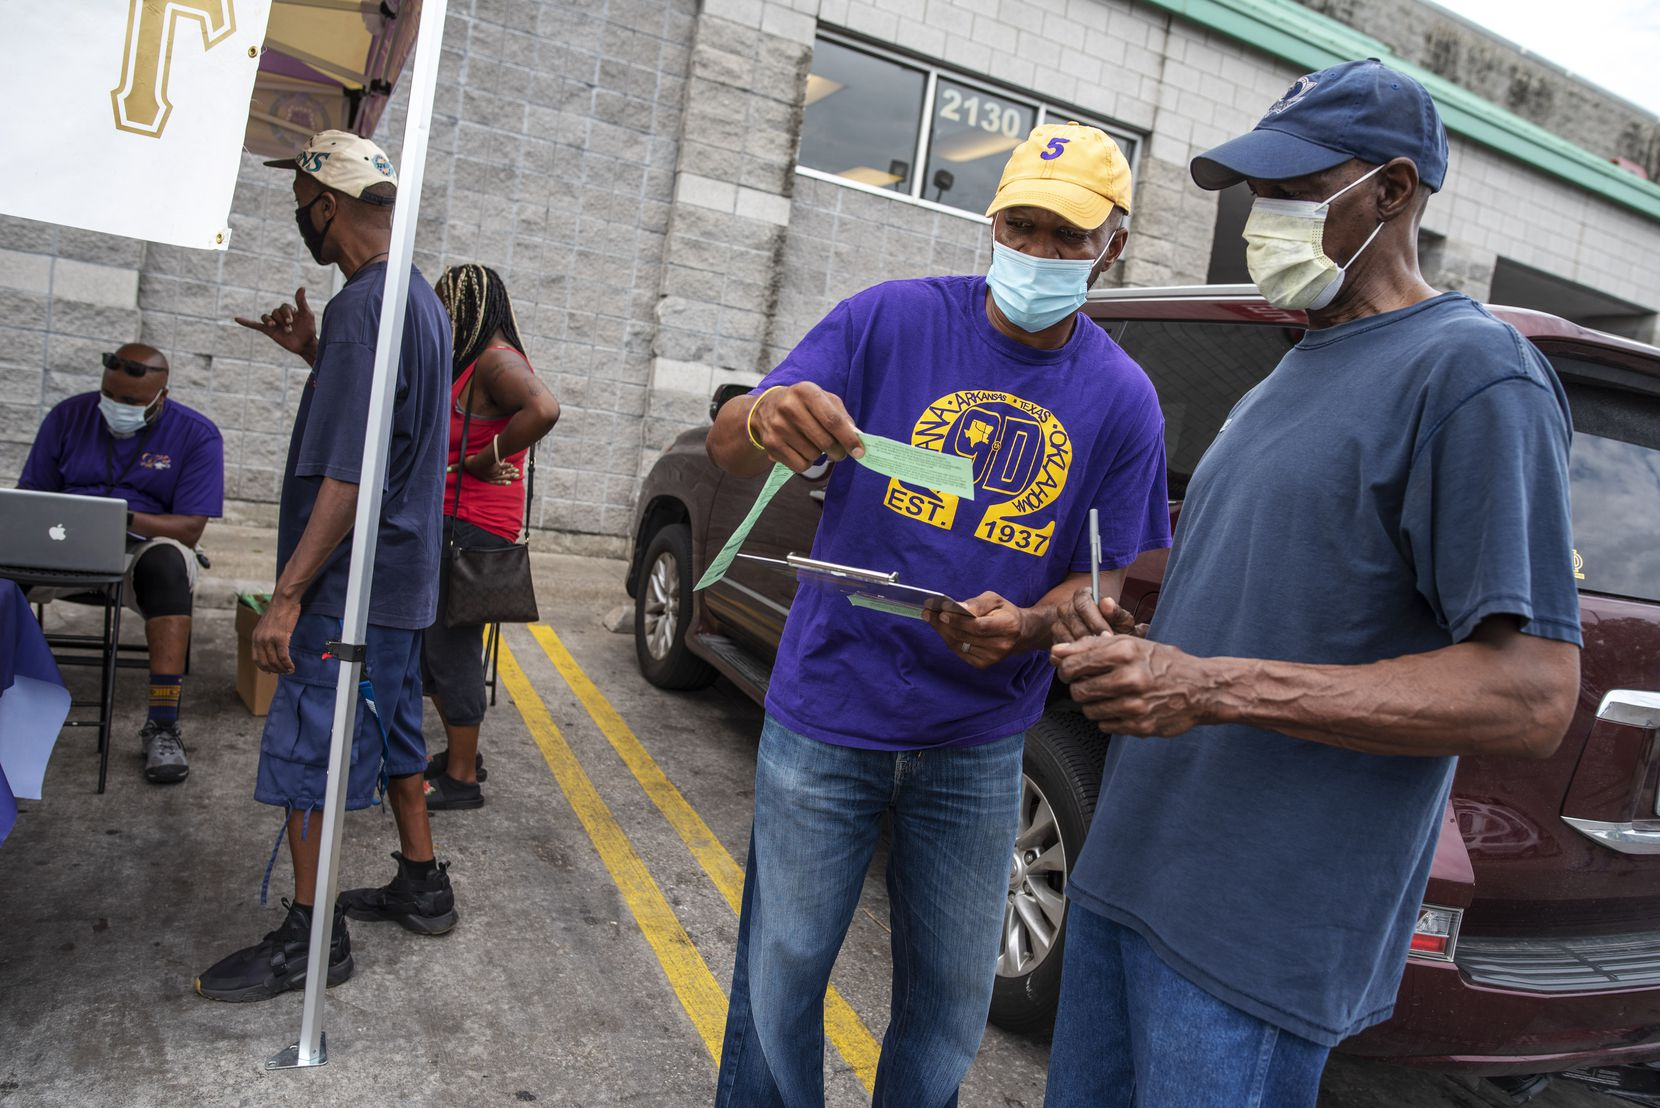 Nate Favaroth (center), a member of Omega Psi Phi fraternity, speaks to Ben Kennedy, 60, as he updates his voter registration information during a voter registration drive outside of the Cash Saver grocery store in South Dallas on Sept. 5, 2020. The fraternity, part of the National Pan-Hellenic Council, conducted the registration drive.